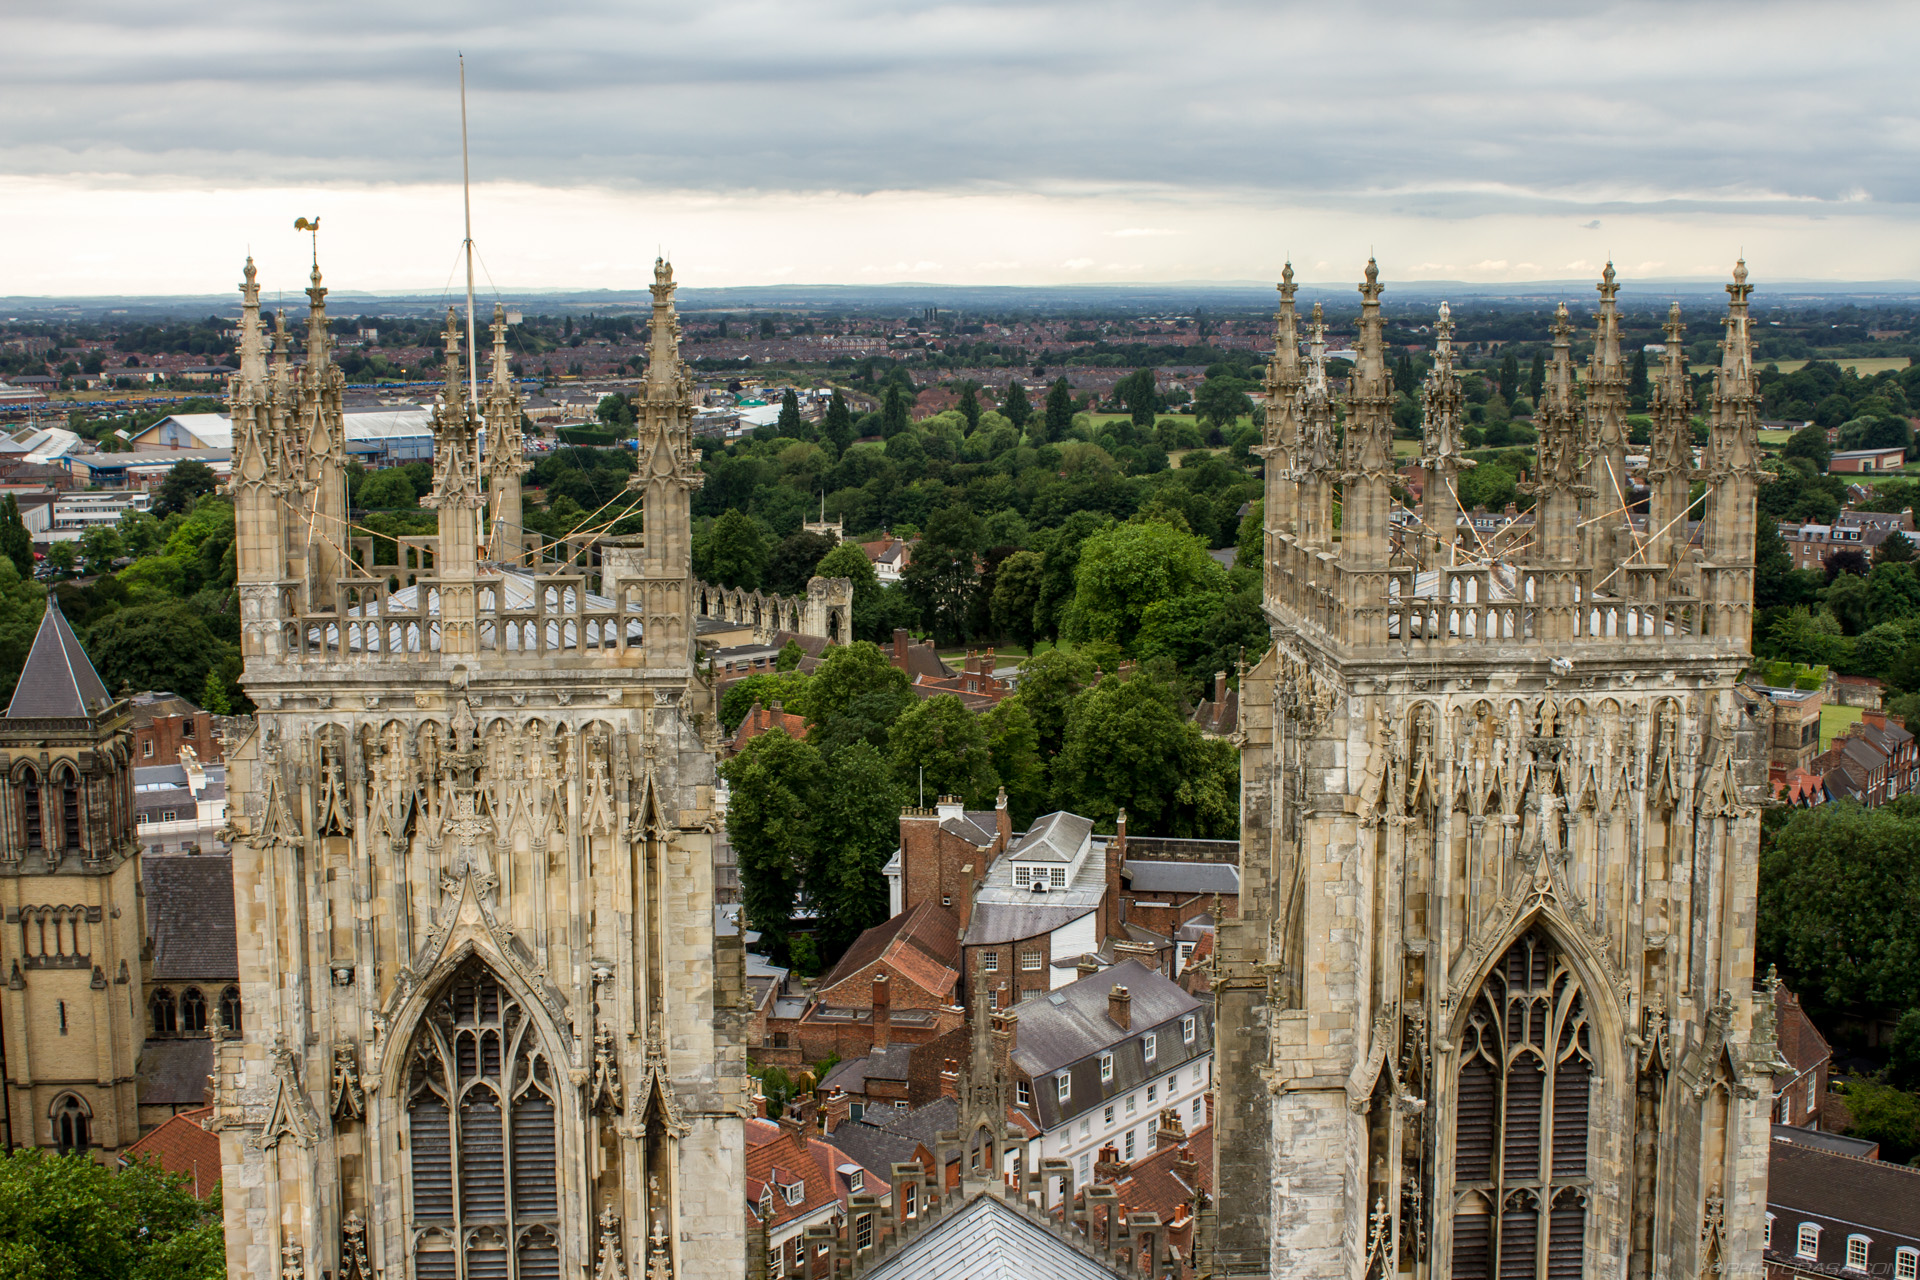 http://photorasa.com/yorkminster-cathedral/york-twin-towers/